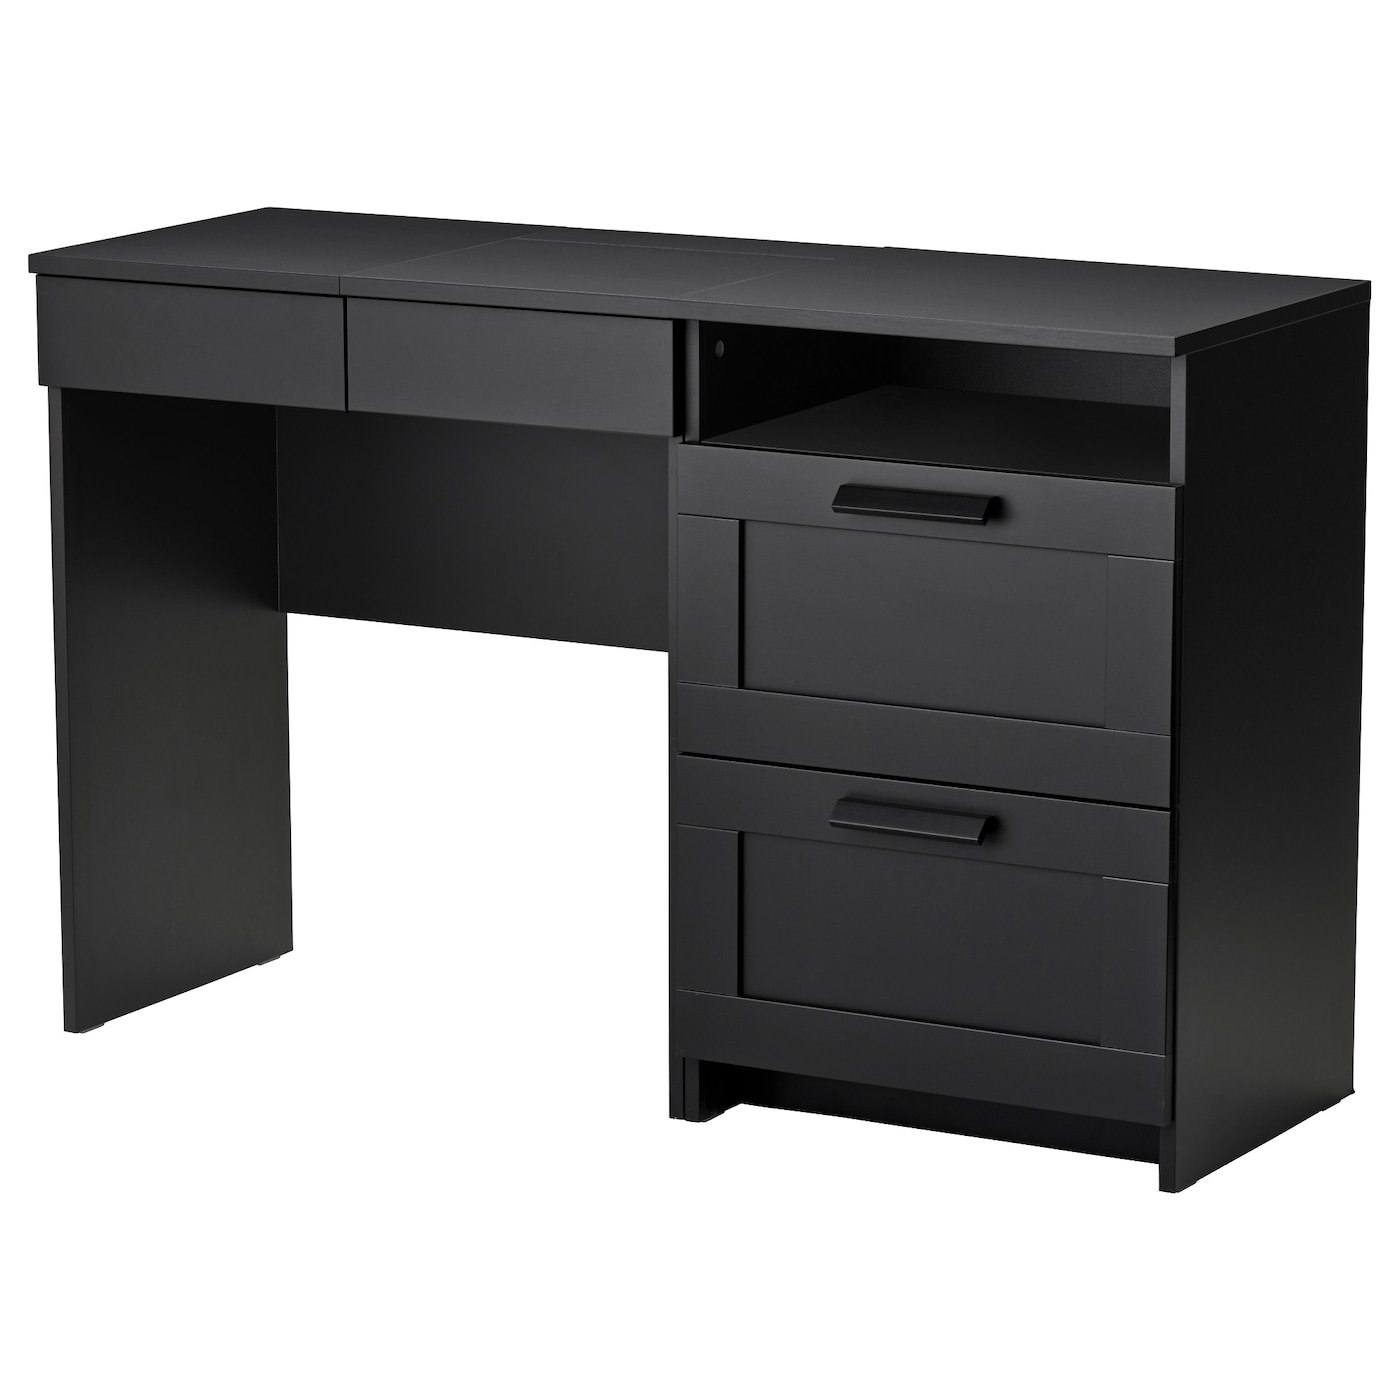 Brimnes dressing table chest of 2 drawers black ikea - Accessoire dressing ikea ...